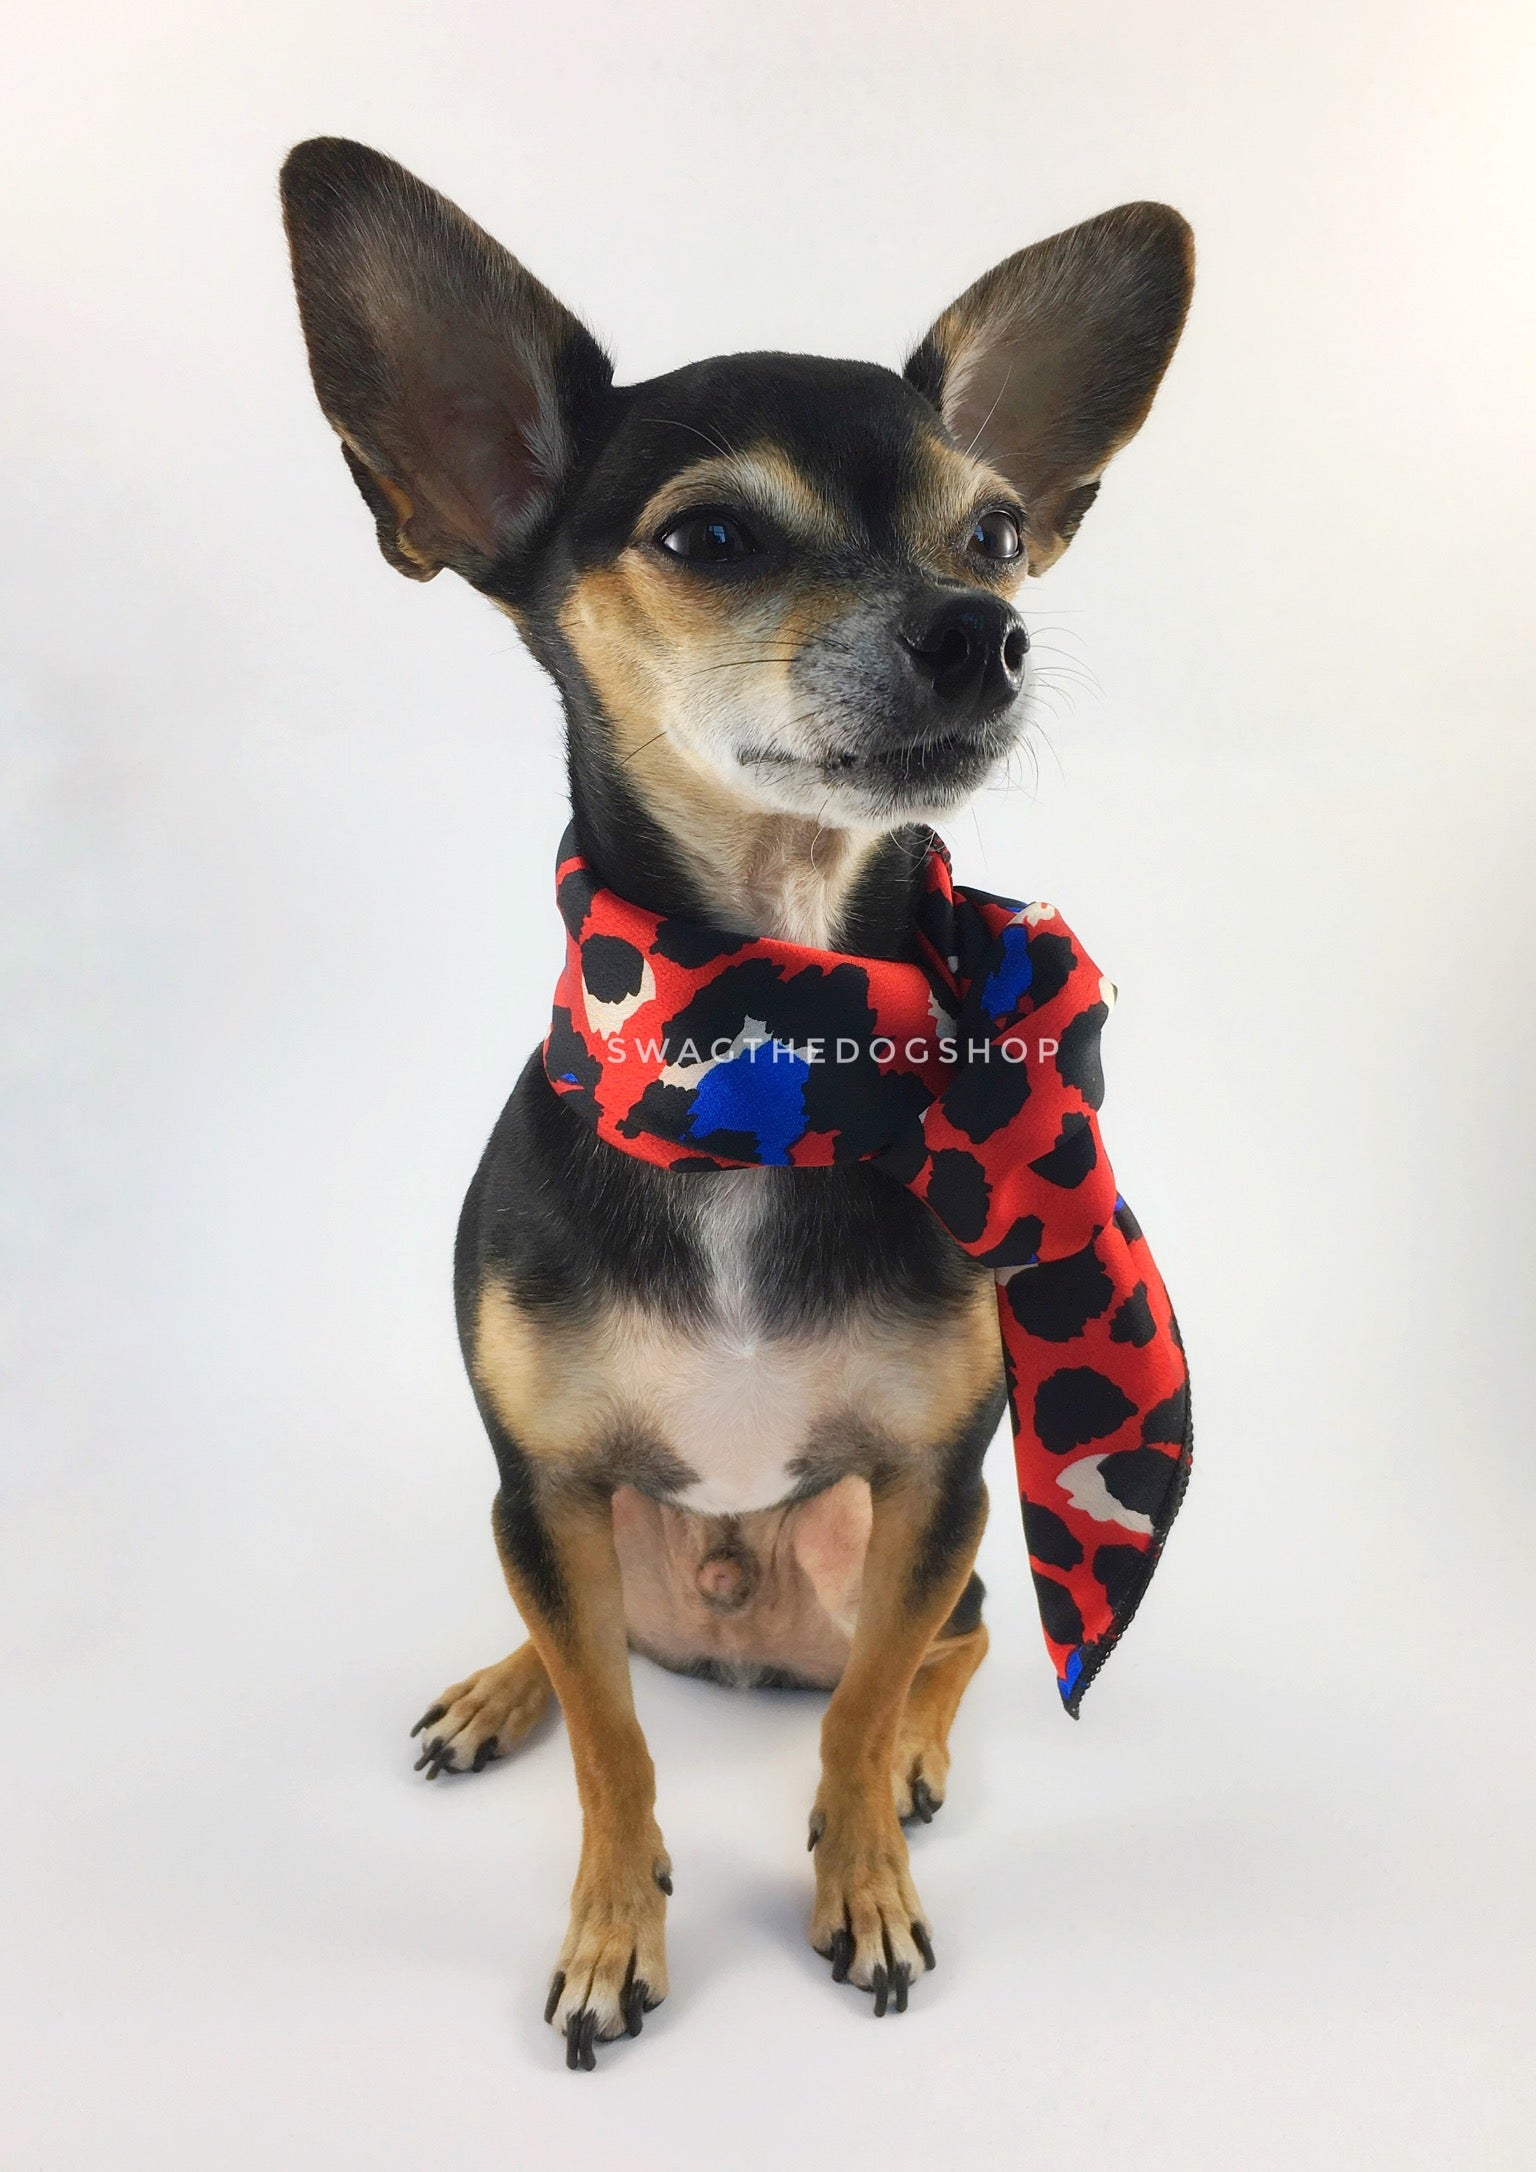 Fierce Vibrant Red with Blue Swagdana Scarf - Full Frontal View of Cute Chihuahua Wearing Swagdana Scarf as Neckerchief. Dog Bandana. Dog Scarf